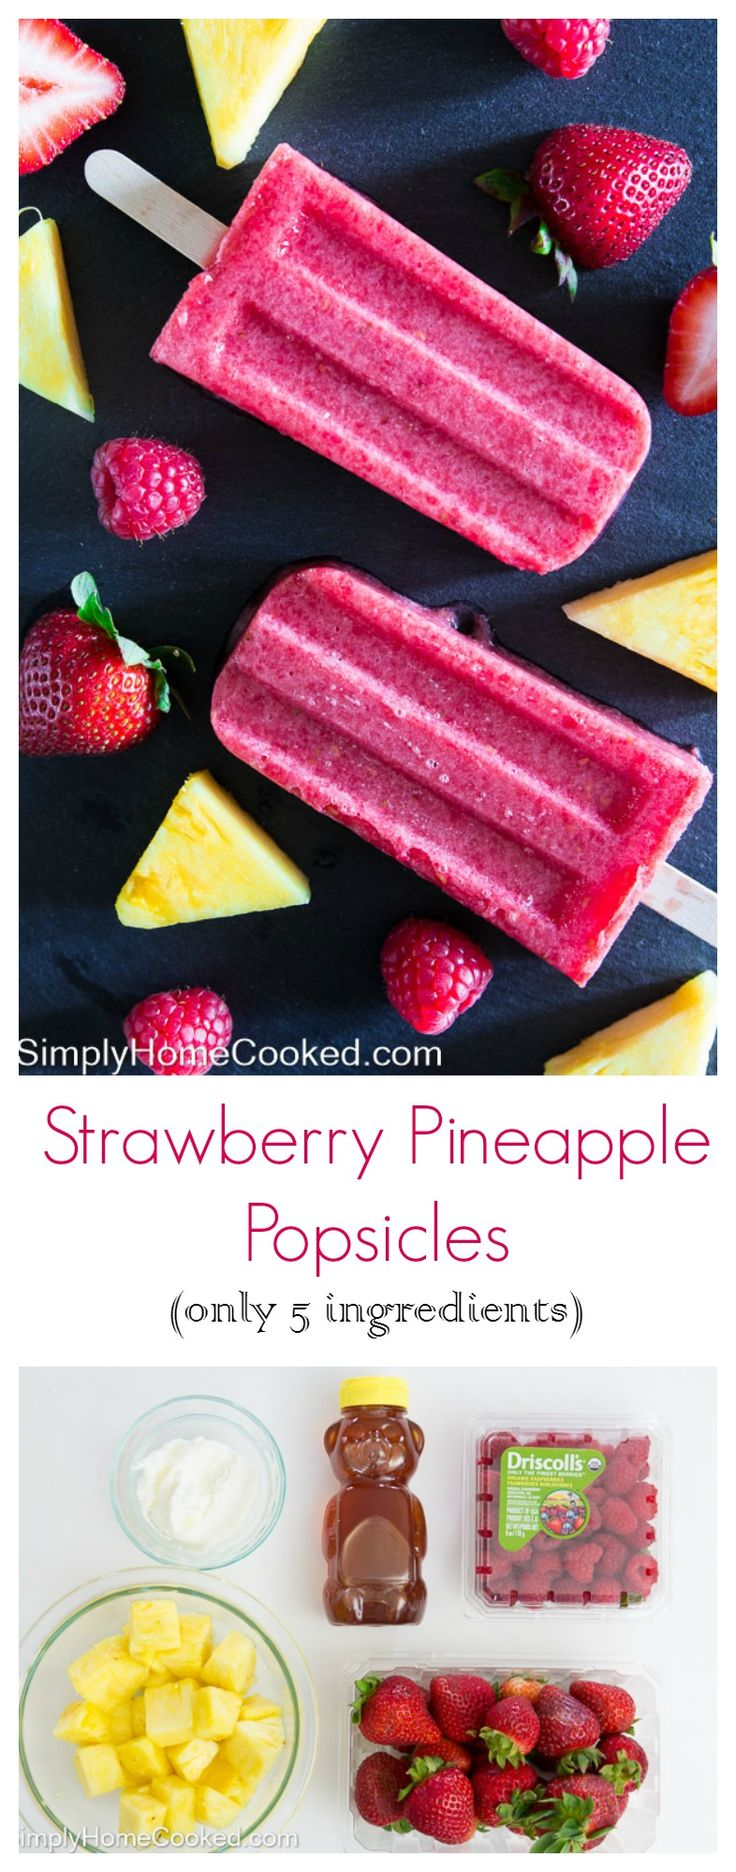 These 5 ingredient strawberry pineapple popsicles are a tastier and healthier alternative to store bought fruit popsicles.